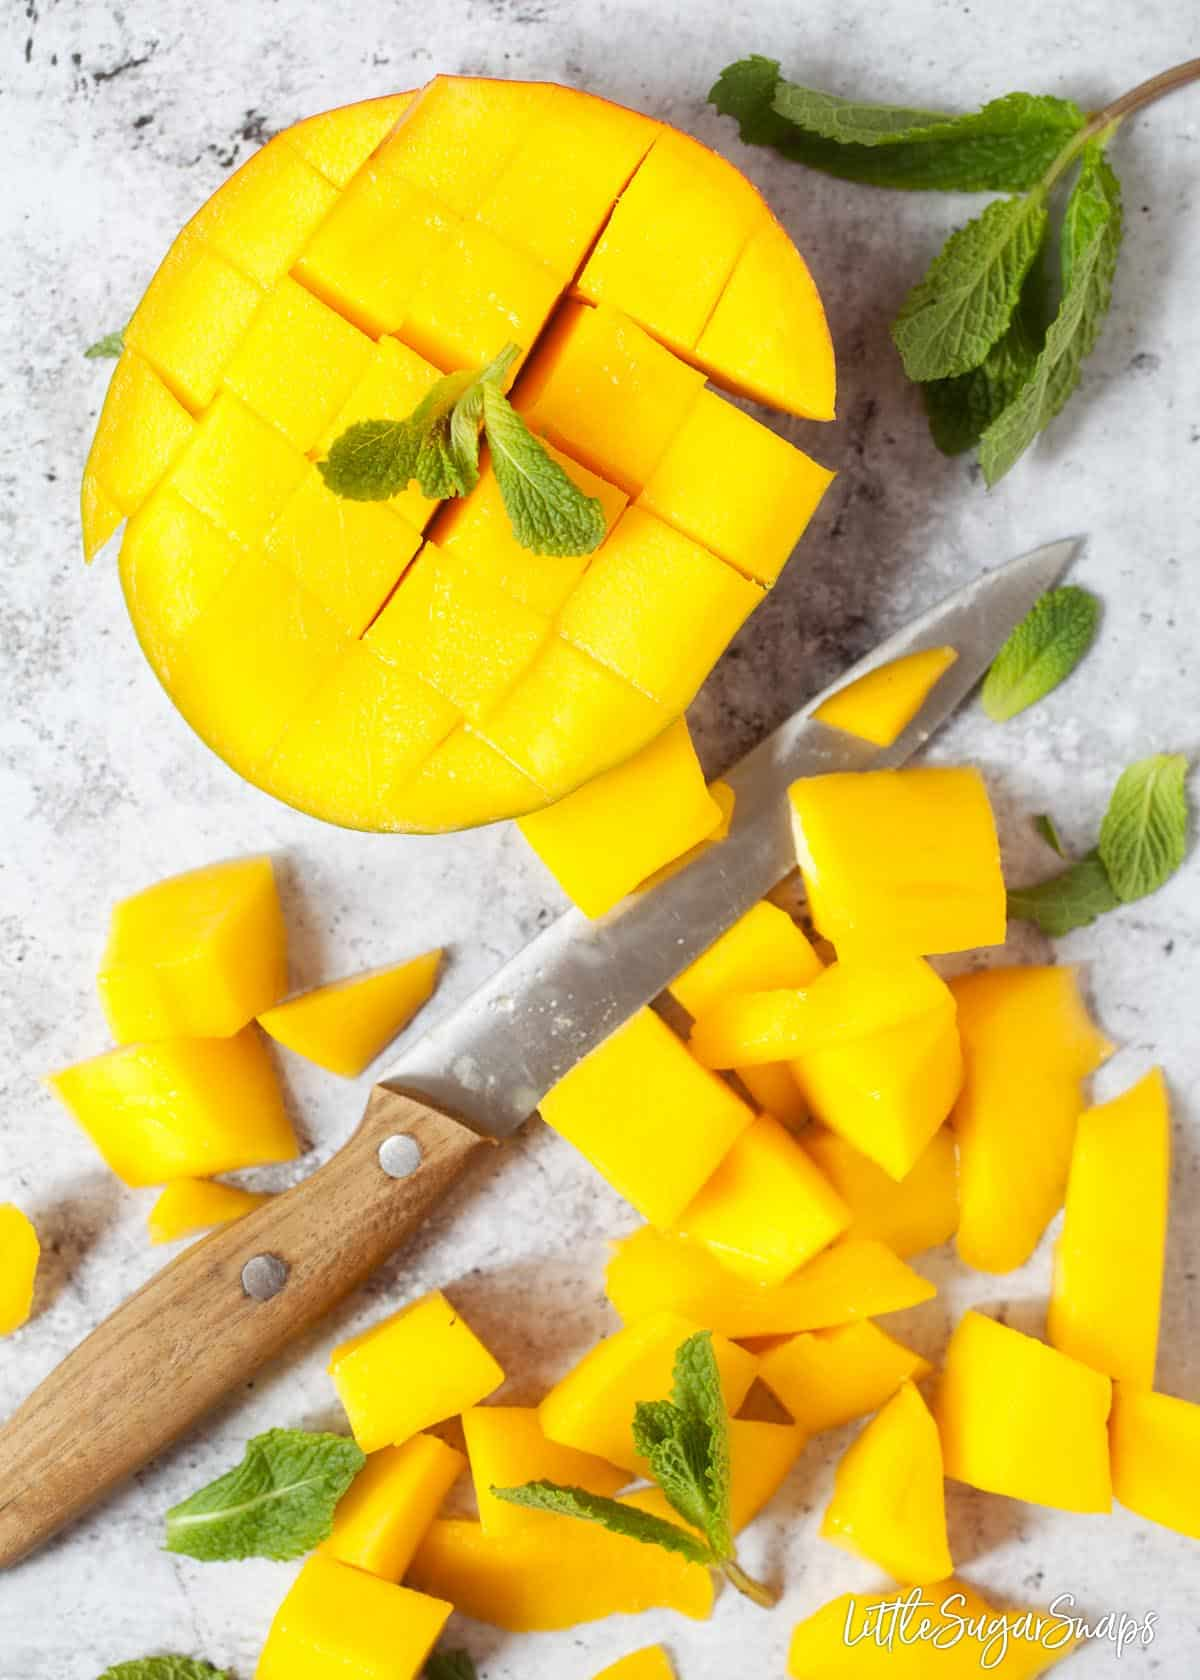 Chunks of mango and half a mango with cuts in it, on a worktop with a sharp kinfe and fresh mint leaves